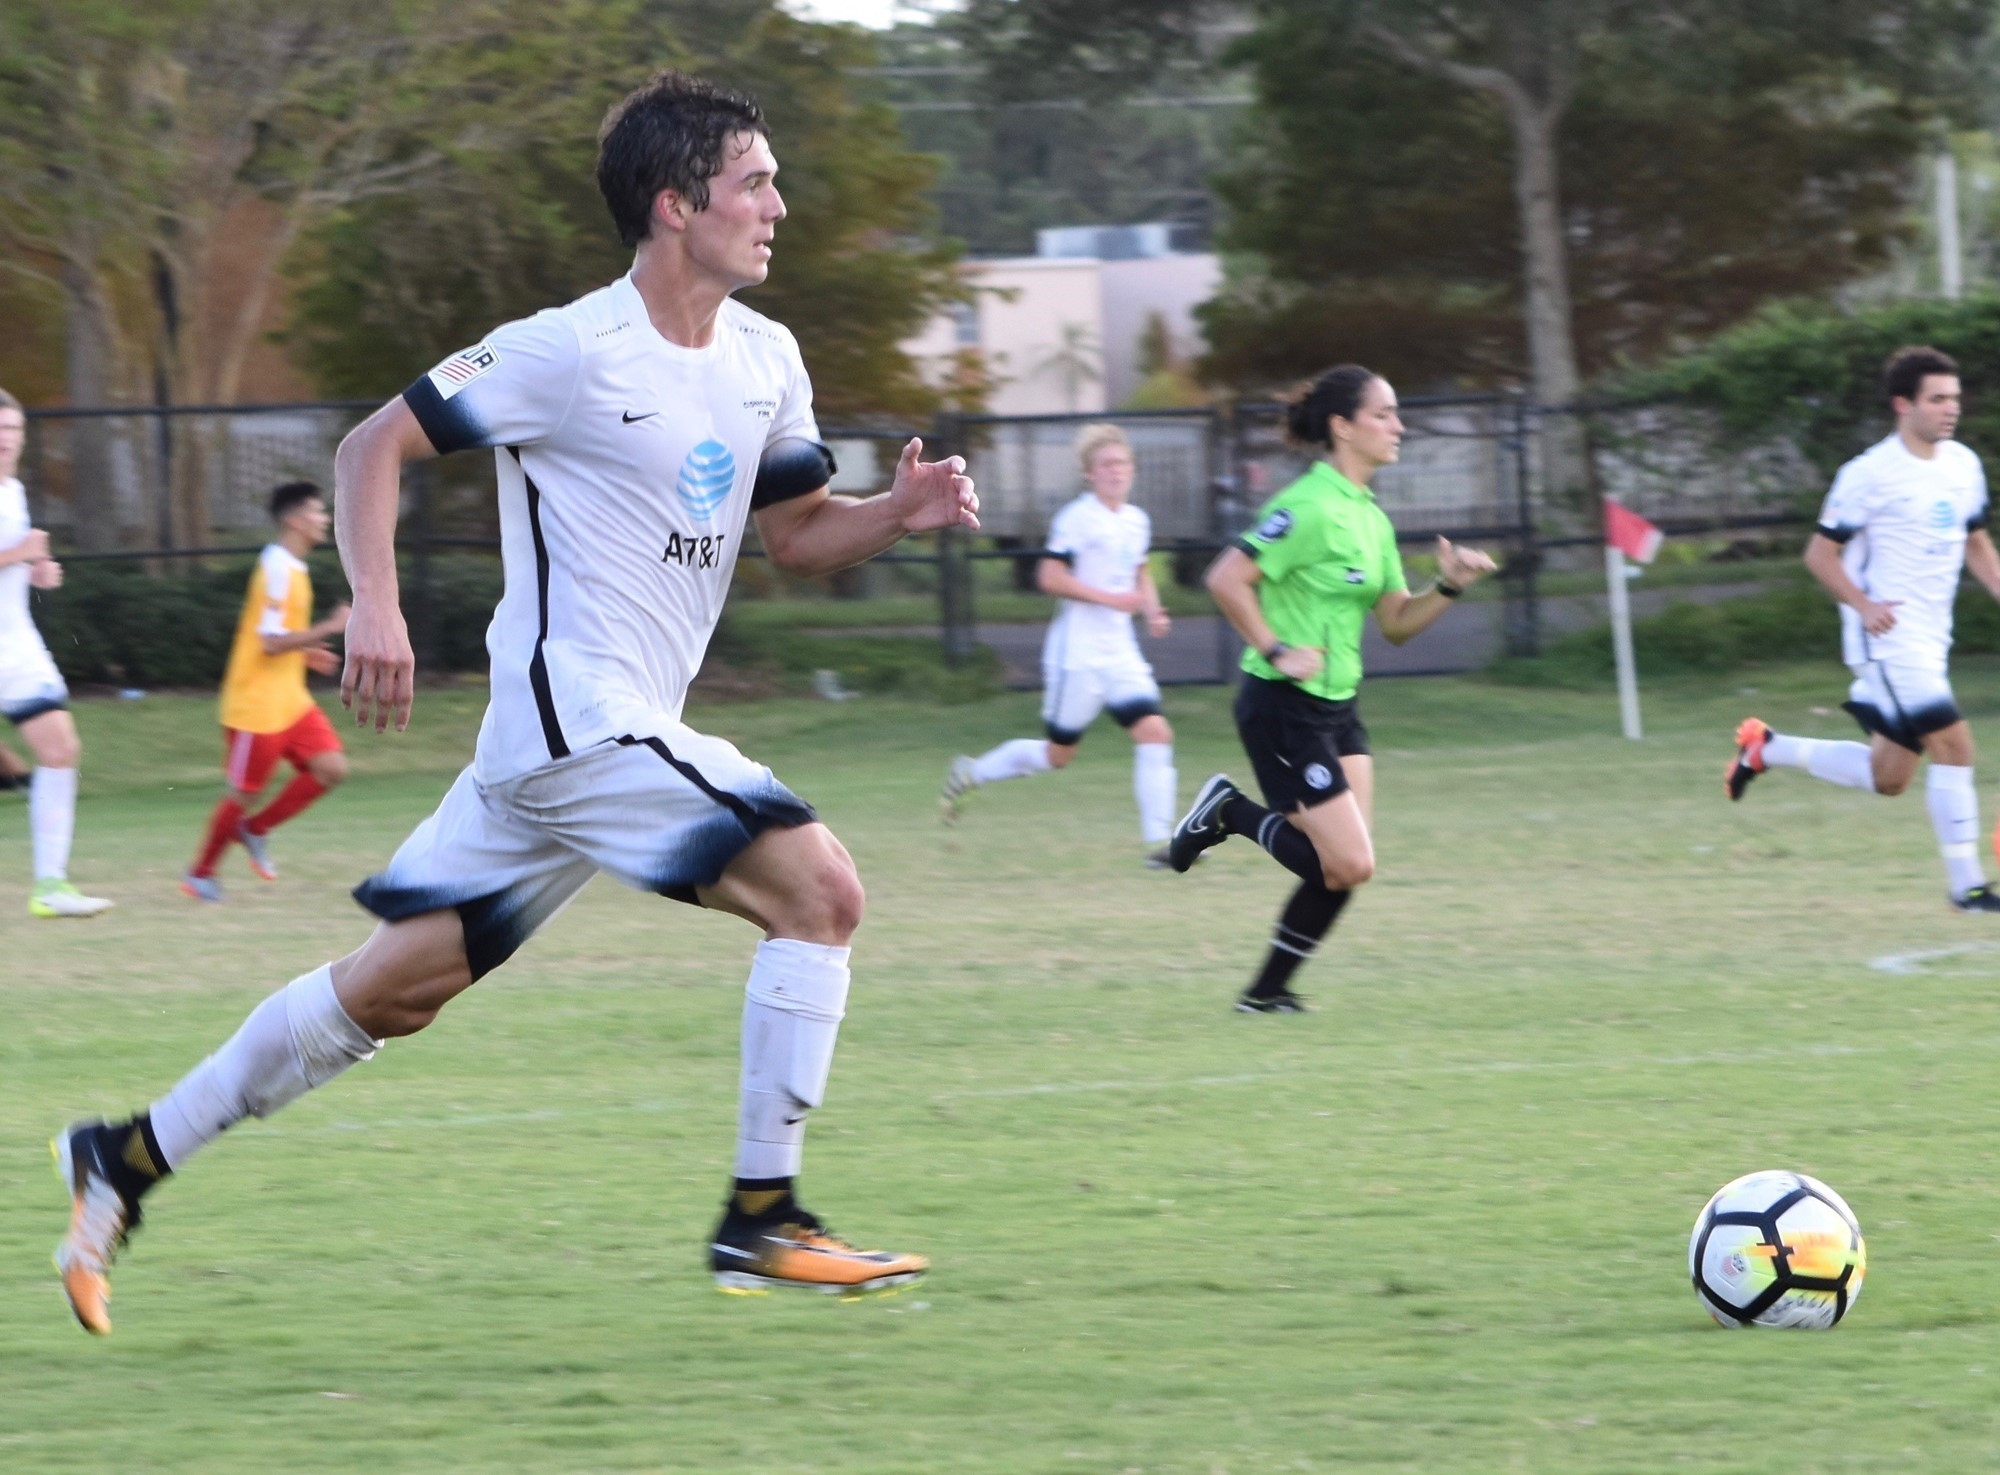 D2 Mens Soccer News, Scores, and Stats